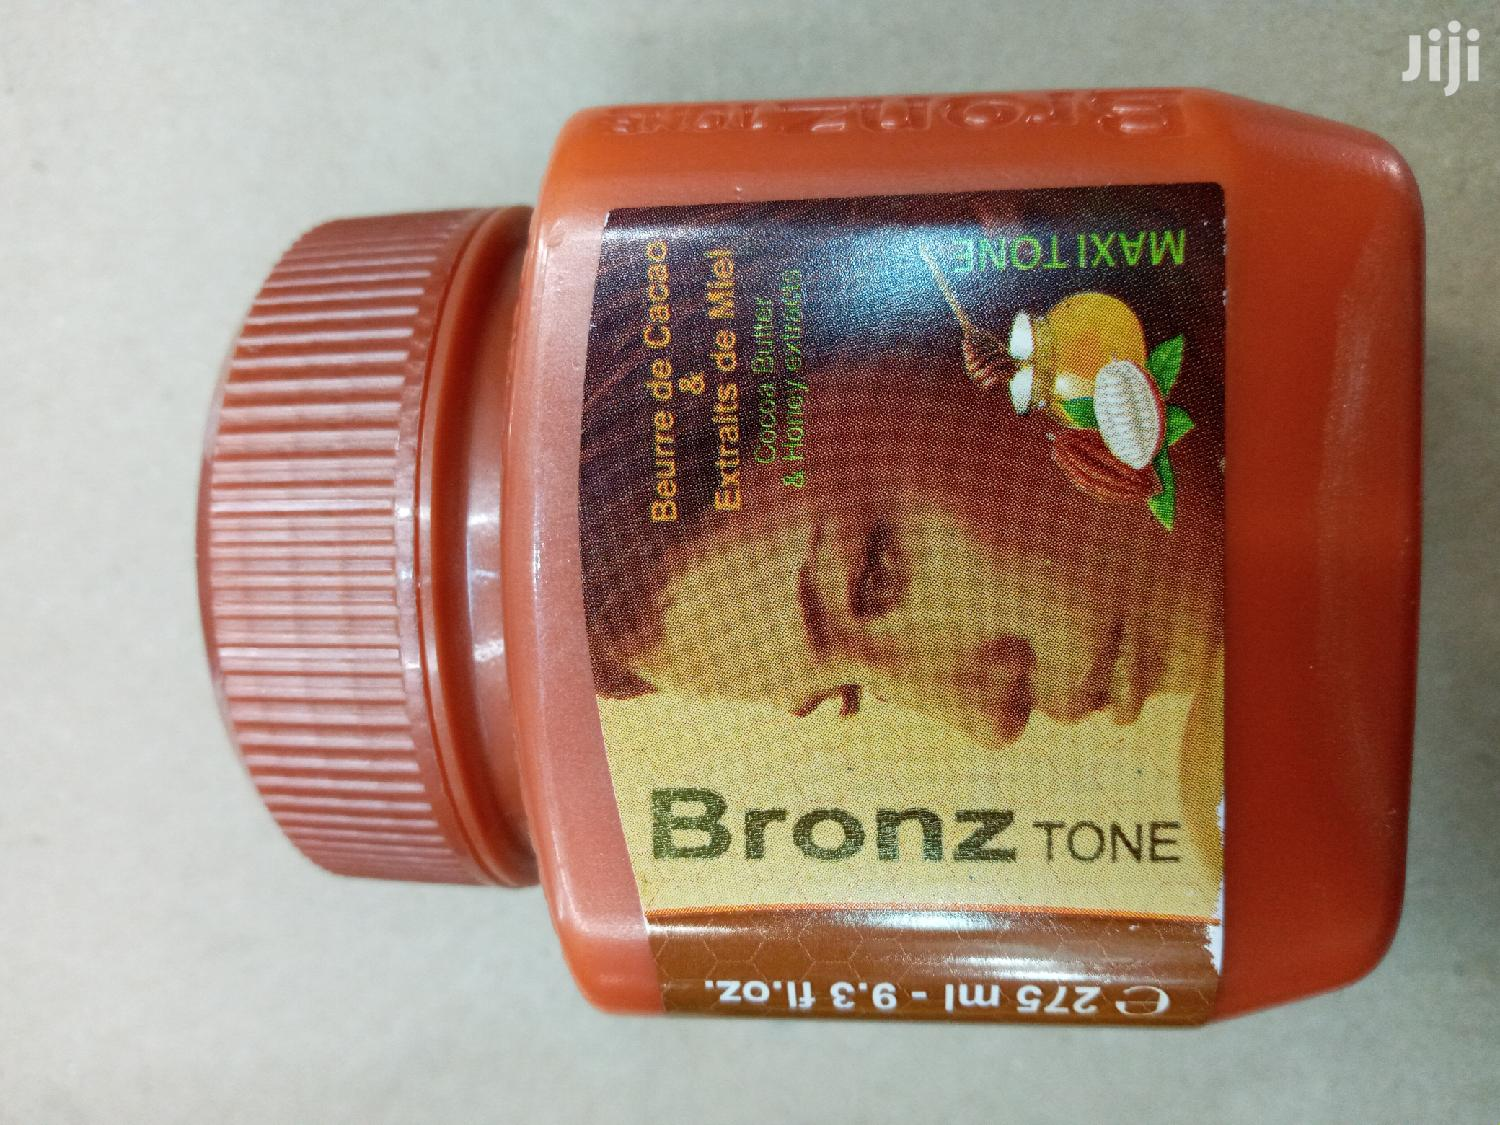 Bronze Tone | Bath & Body for sale in Nairobi Central, Nairobi, Kenya